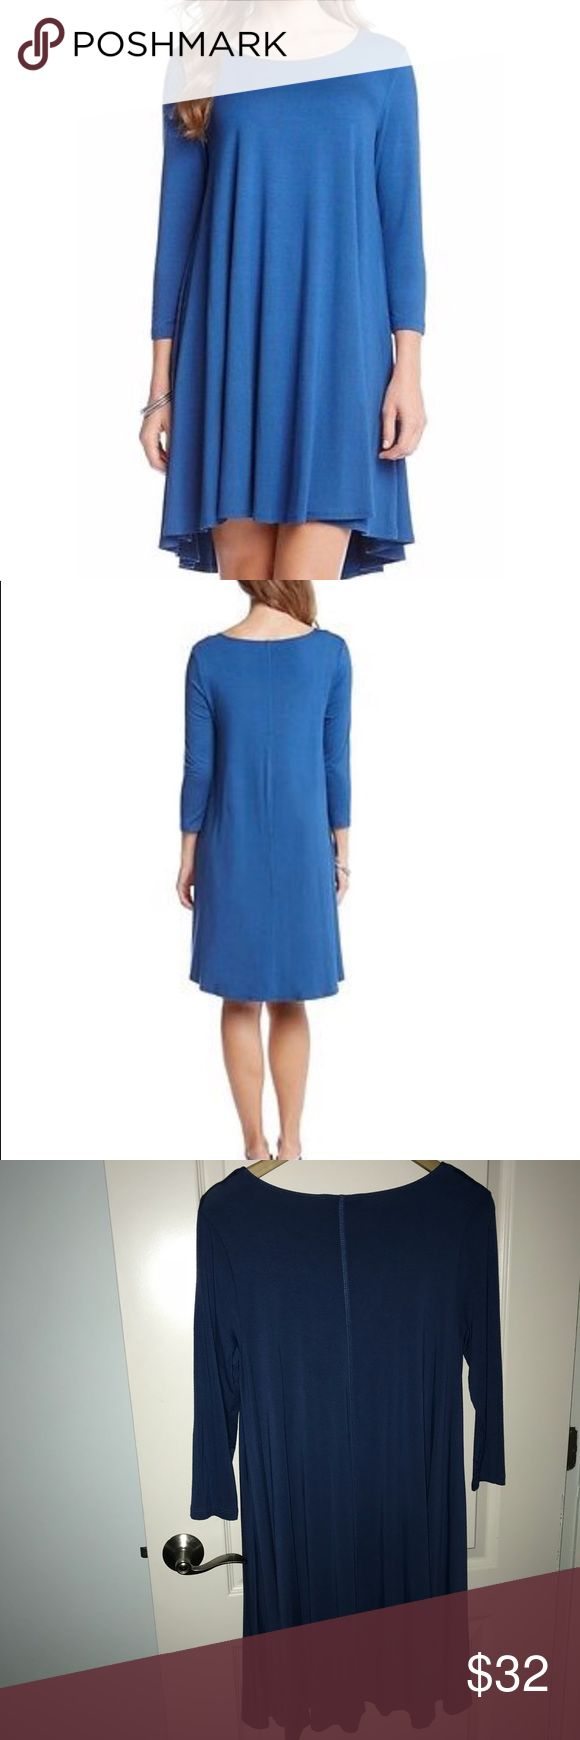 Karen Kane Dress Blue Karen Kane Marine Blue Trapeze Dress swing fit for all around comfort Jersey knit Size S euc Karen Kane Dresses